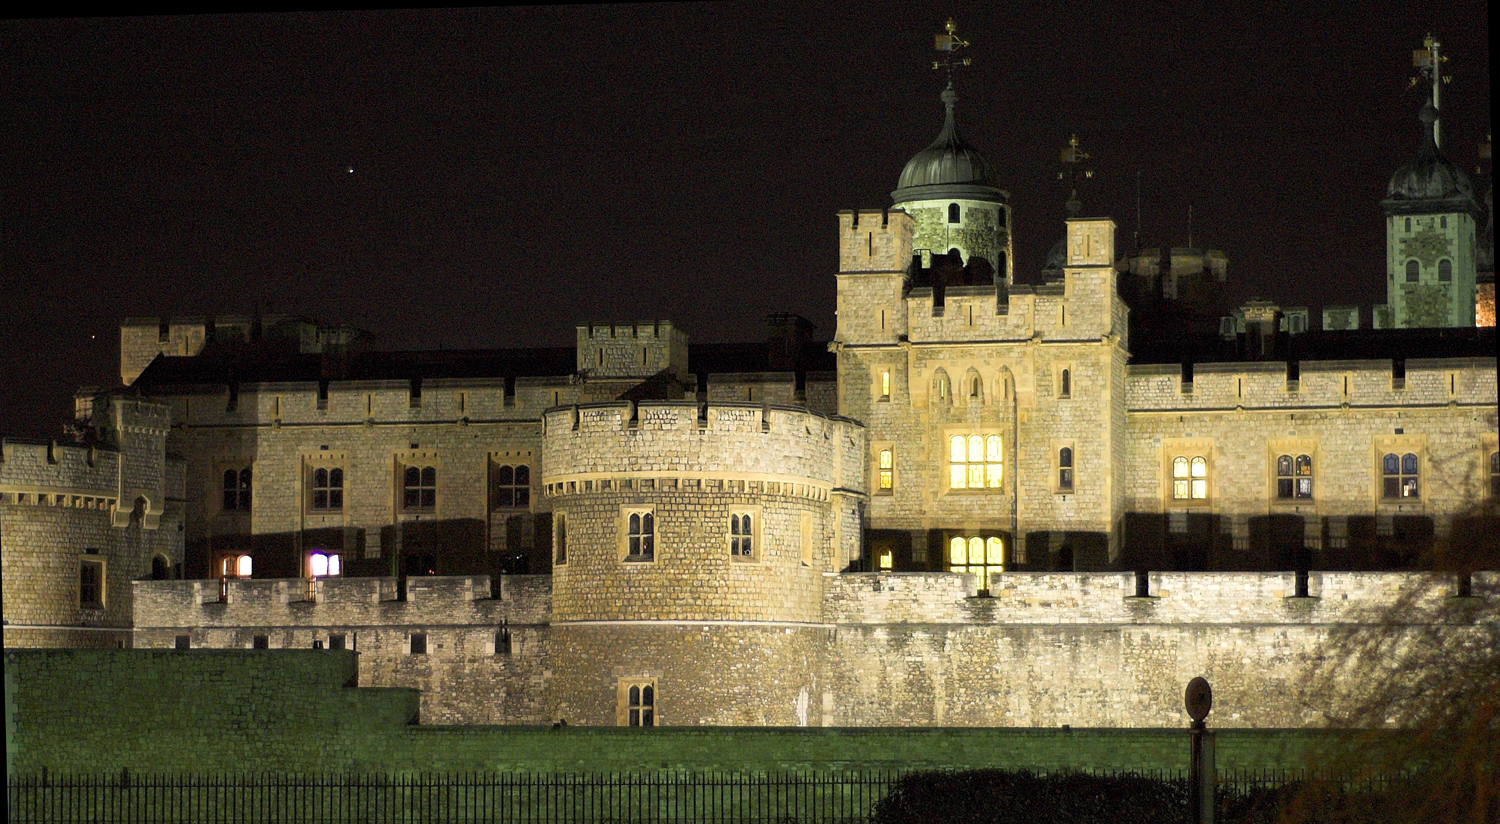 Tower_of_London_at_night2